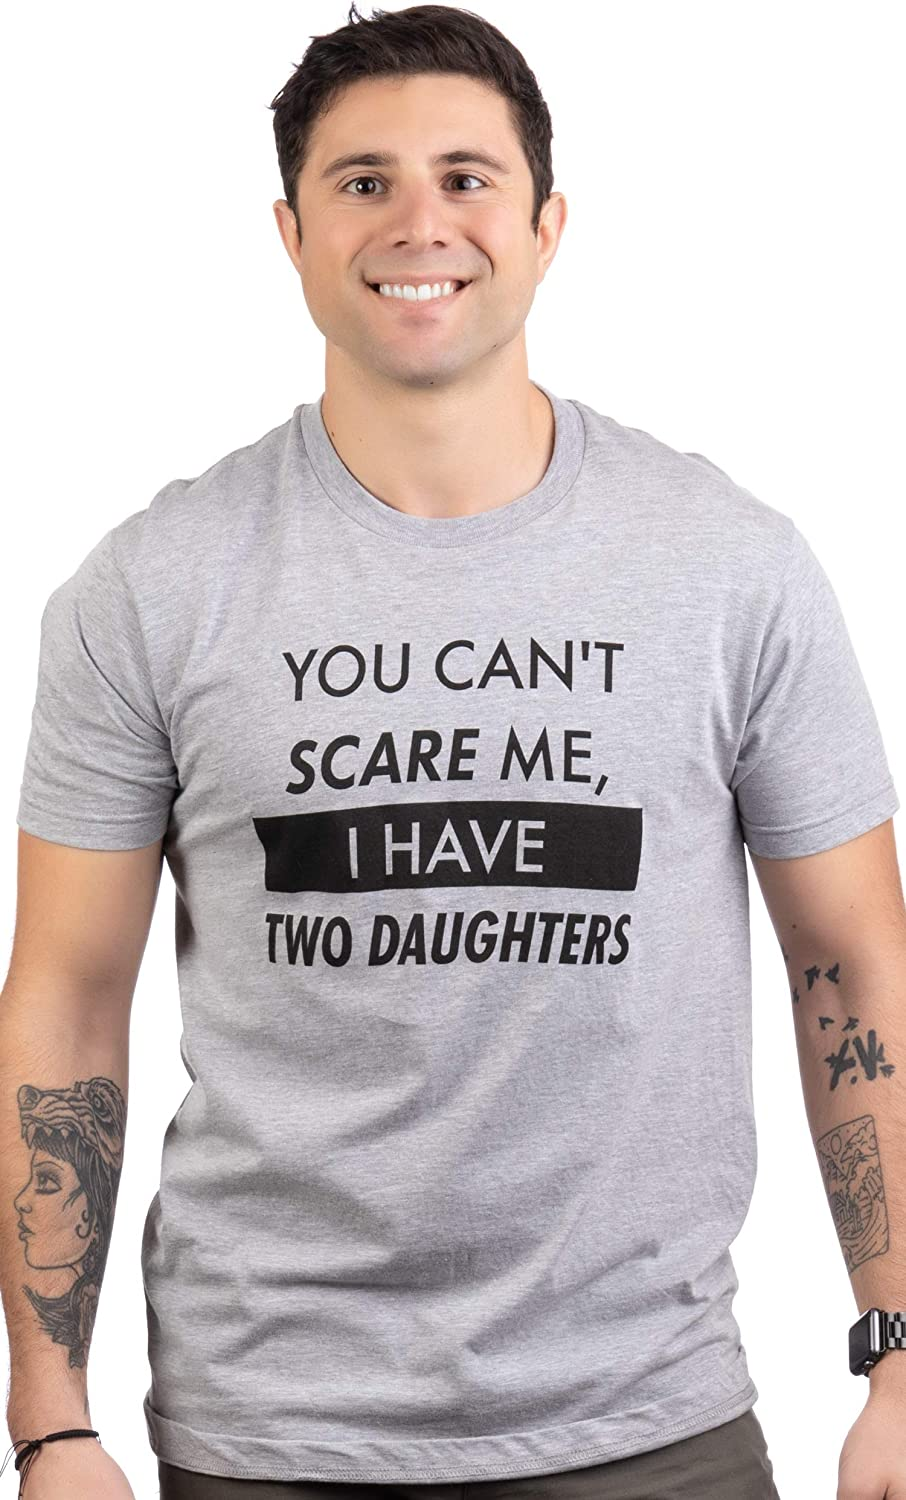 You Can't Scare Me, I Have Two Daughters | Funny Dad Daddy Cute Joke Men T-Shirt: Clothing